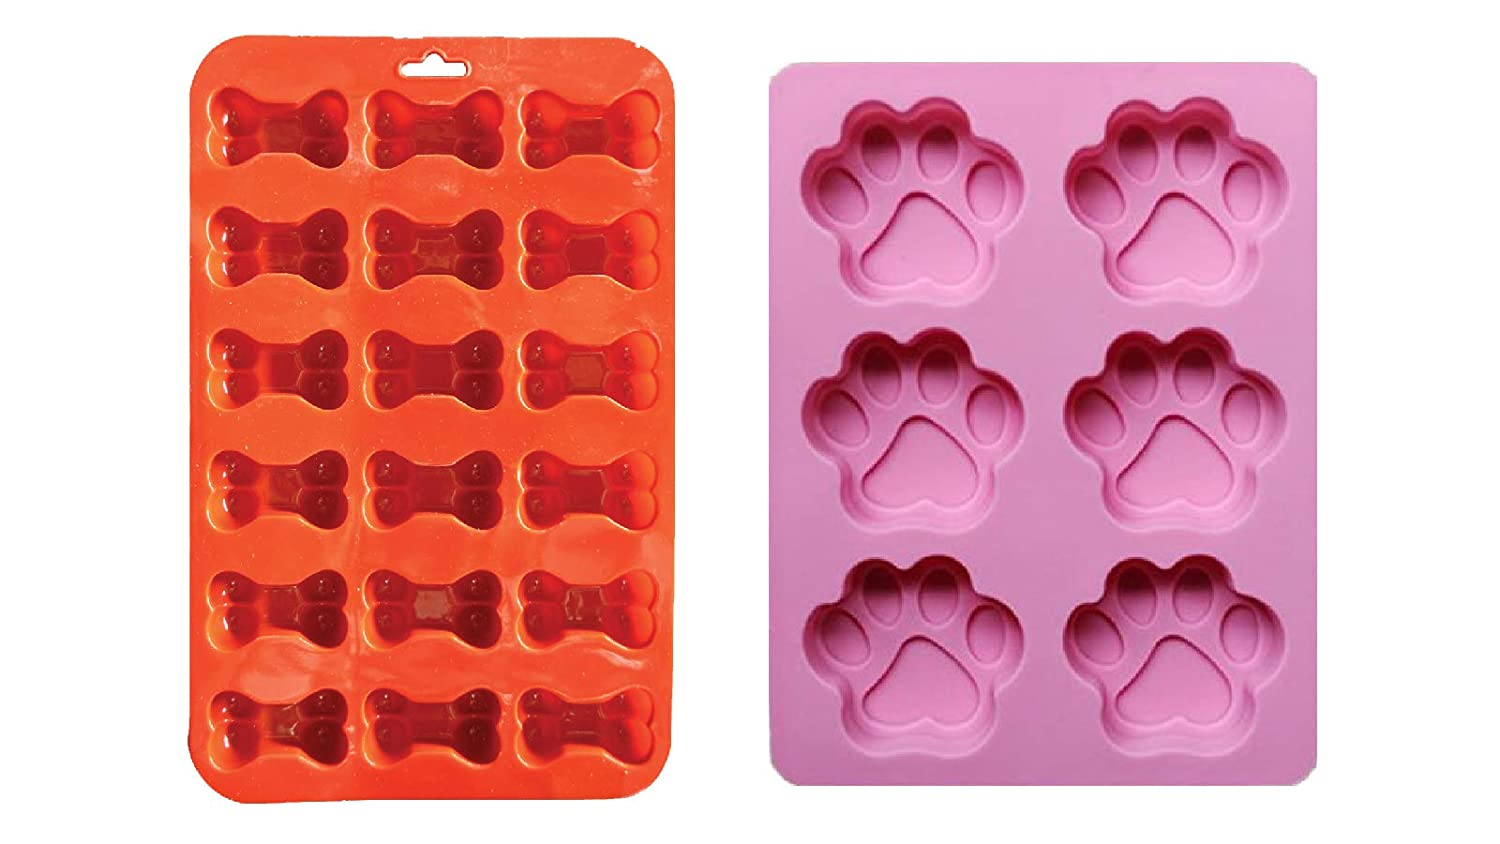 2 Pack Combo Silicone Molds Trays with Puppy Dog Paw and Bone Shape, Homemade Dog Treats, Baking Chocolate Candy, Oven Microwave Freezer Safe